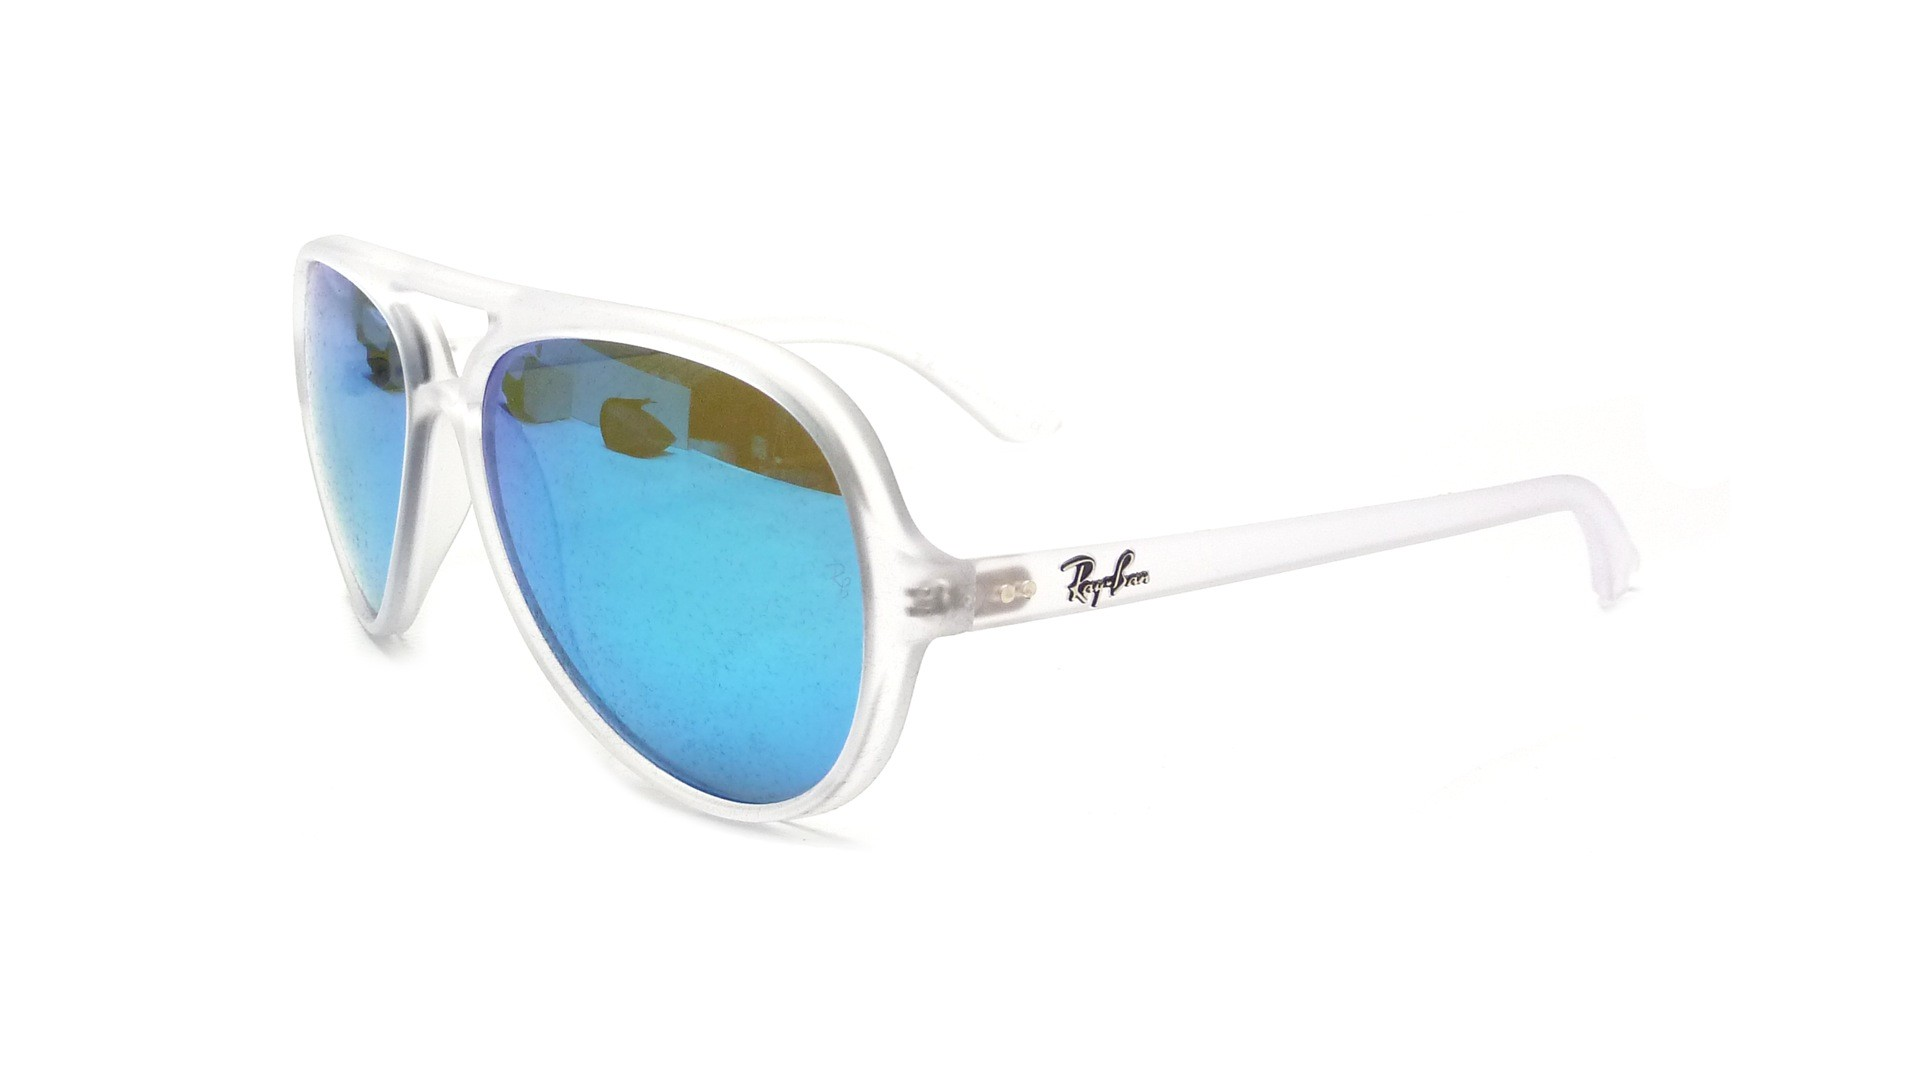 afb718c5a4fd1 Lunette Ray Ban Cats 5000 Prix – Southern California Weather Force